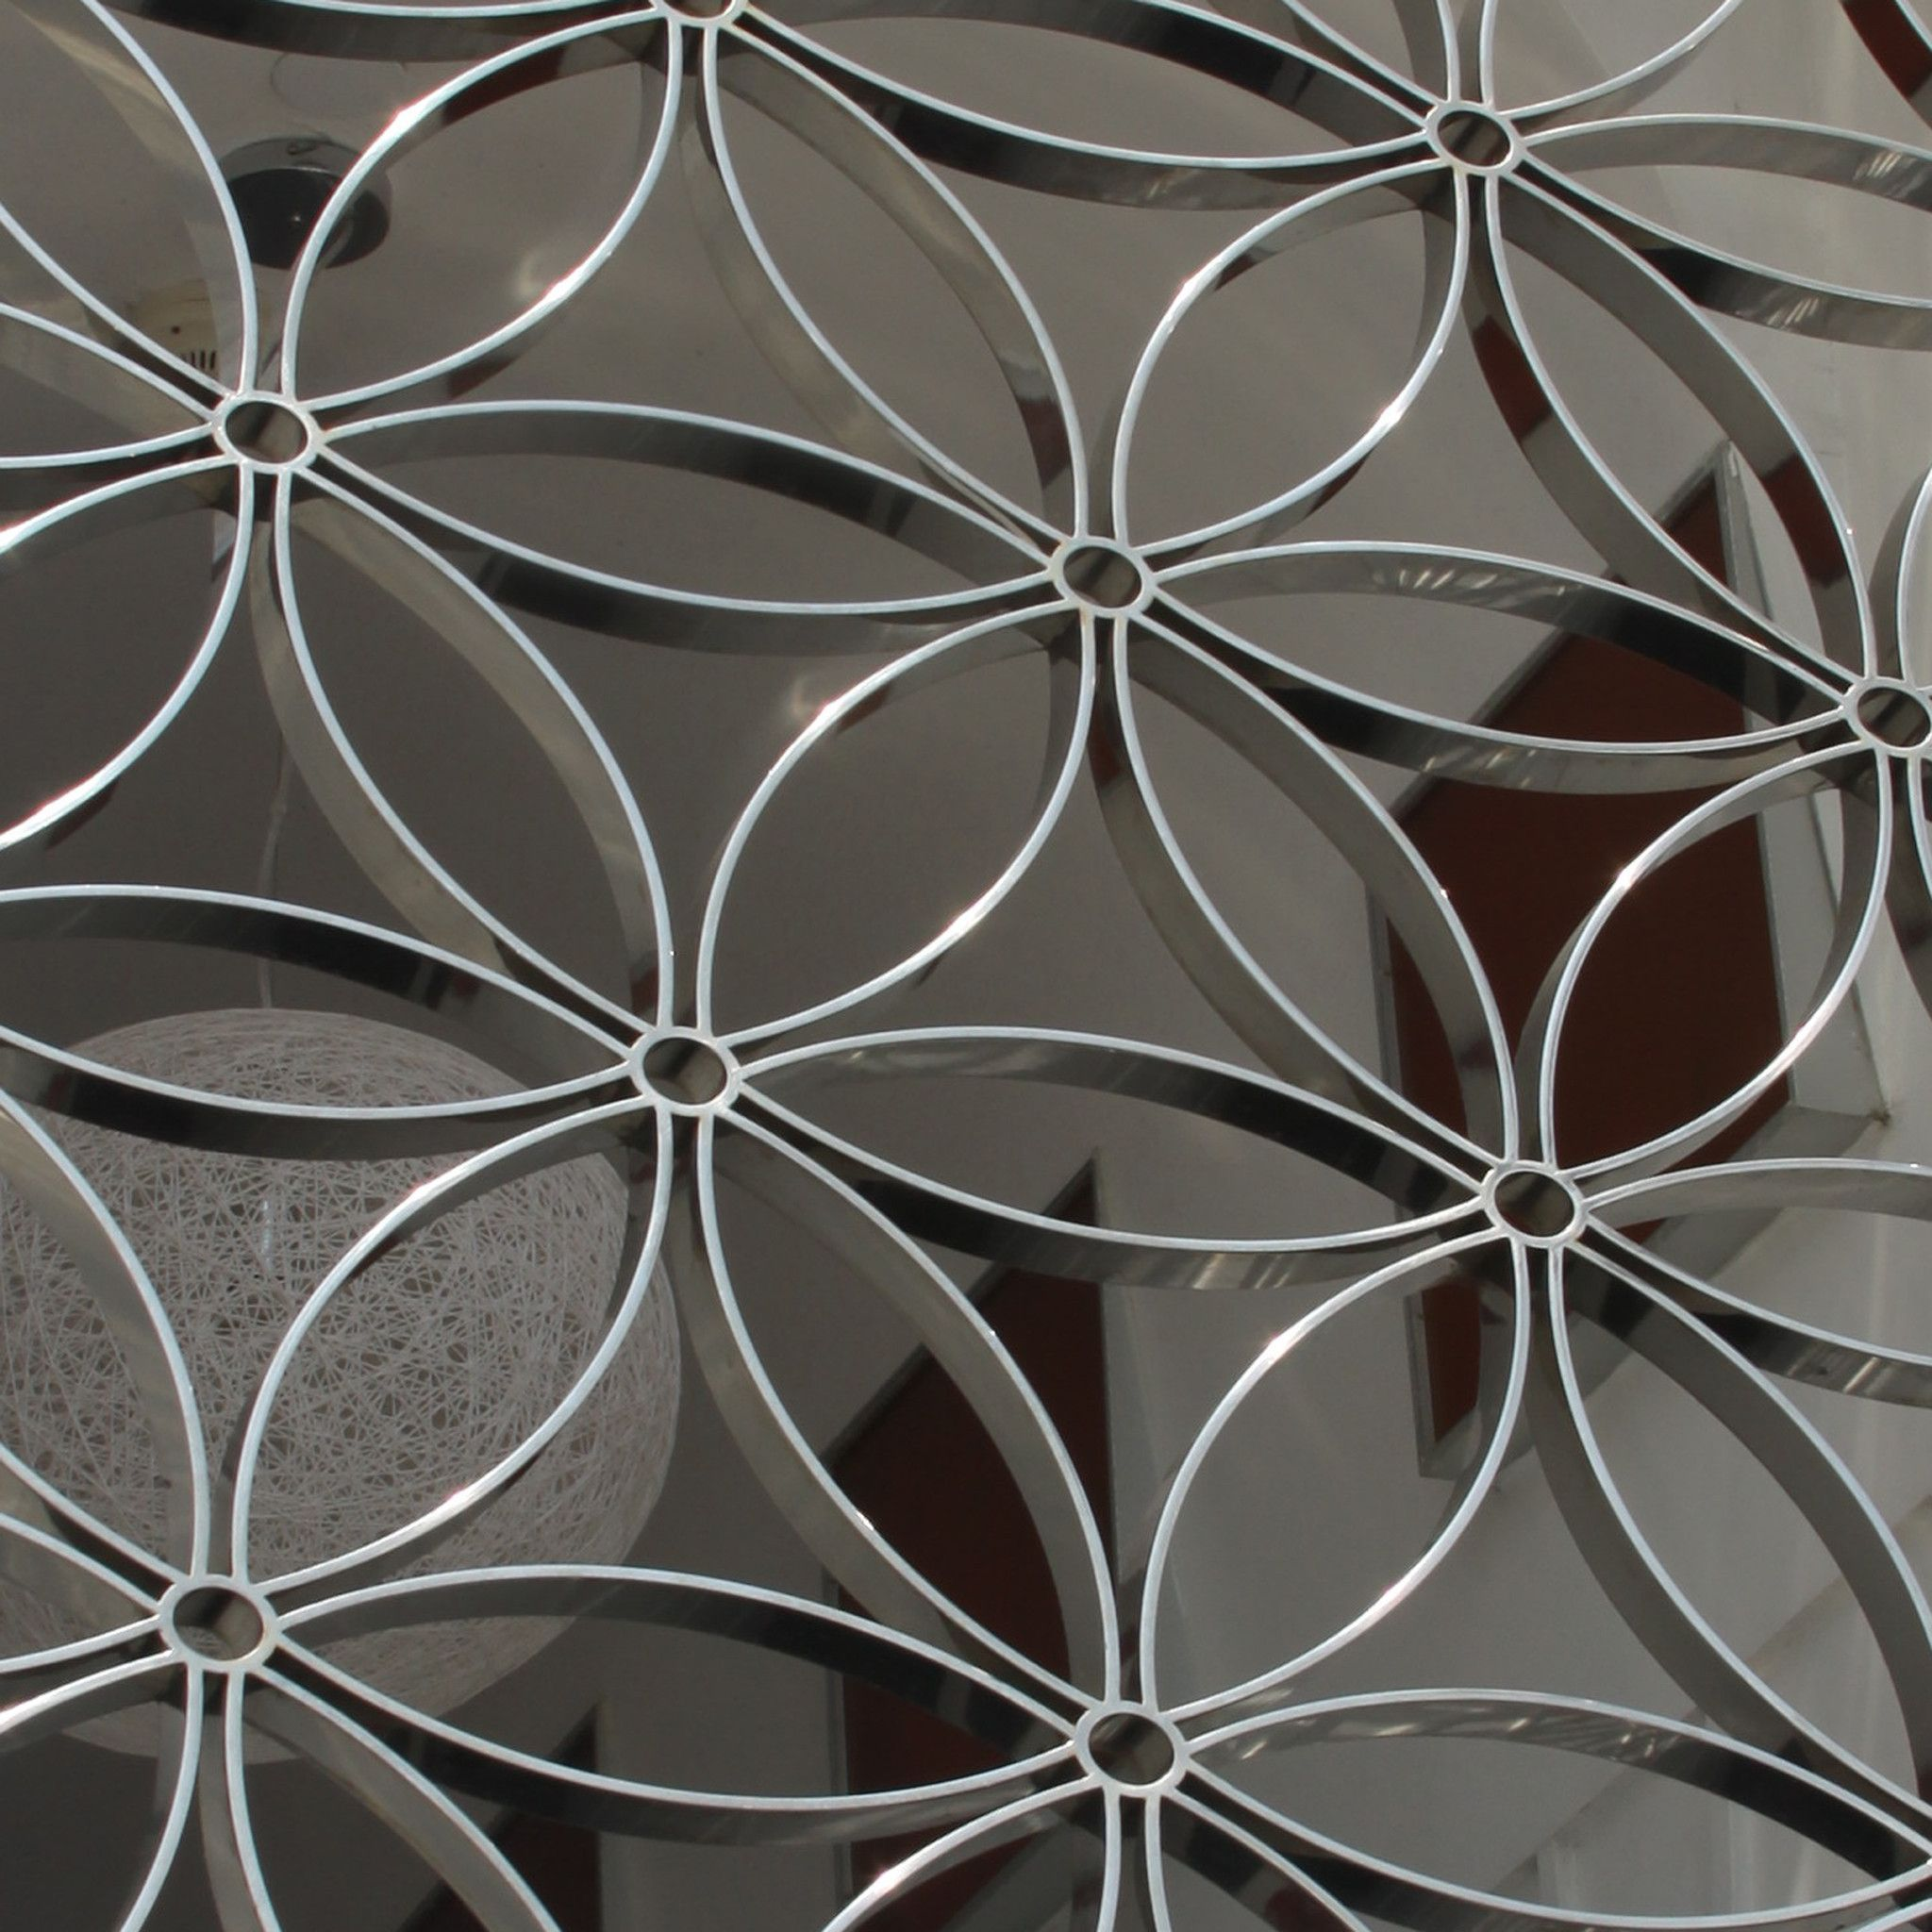 Decorative Panels Screens Decorative Panels Decorative Screen Panels Metal Screen